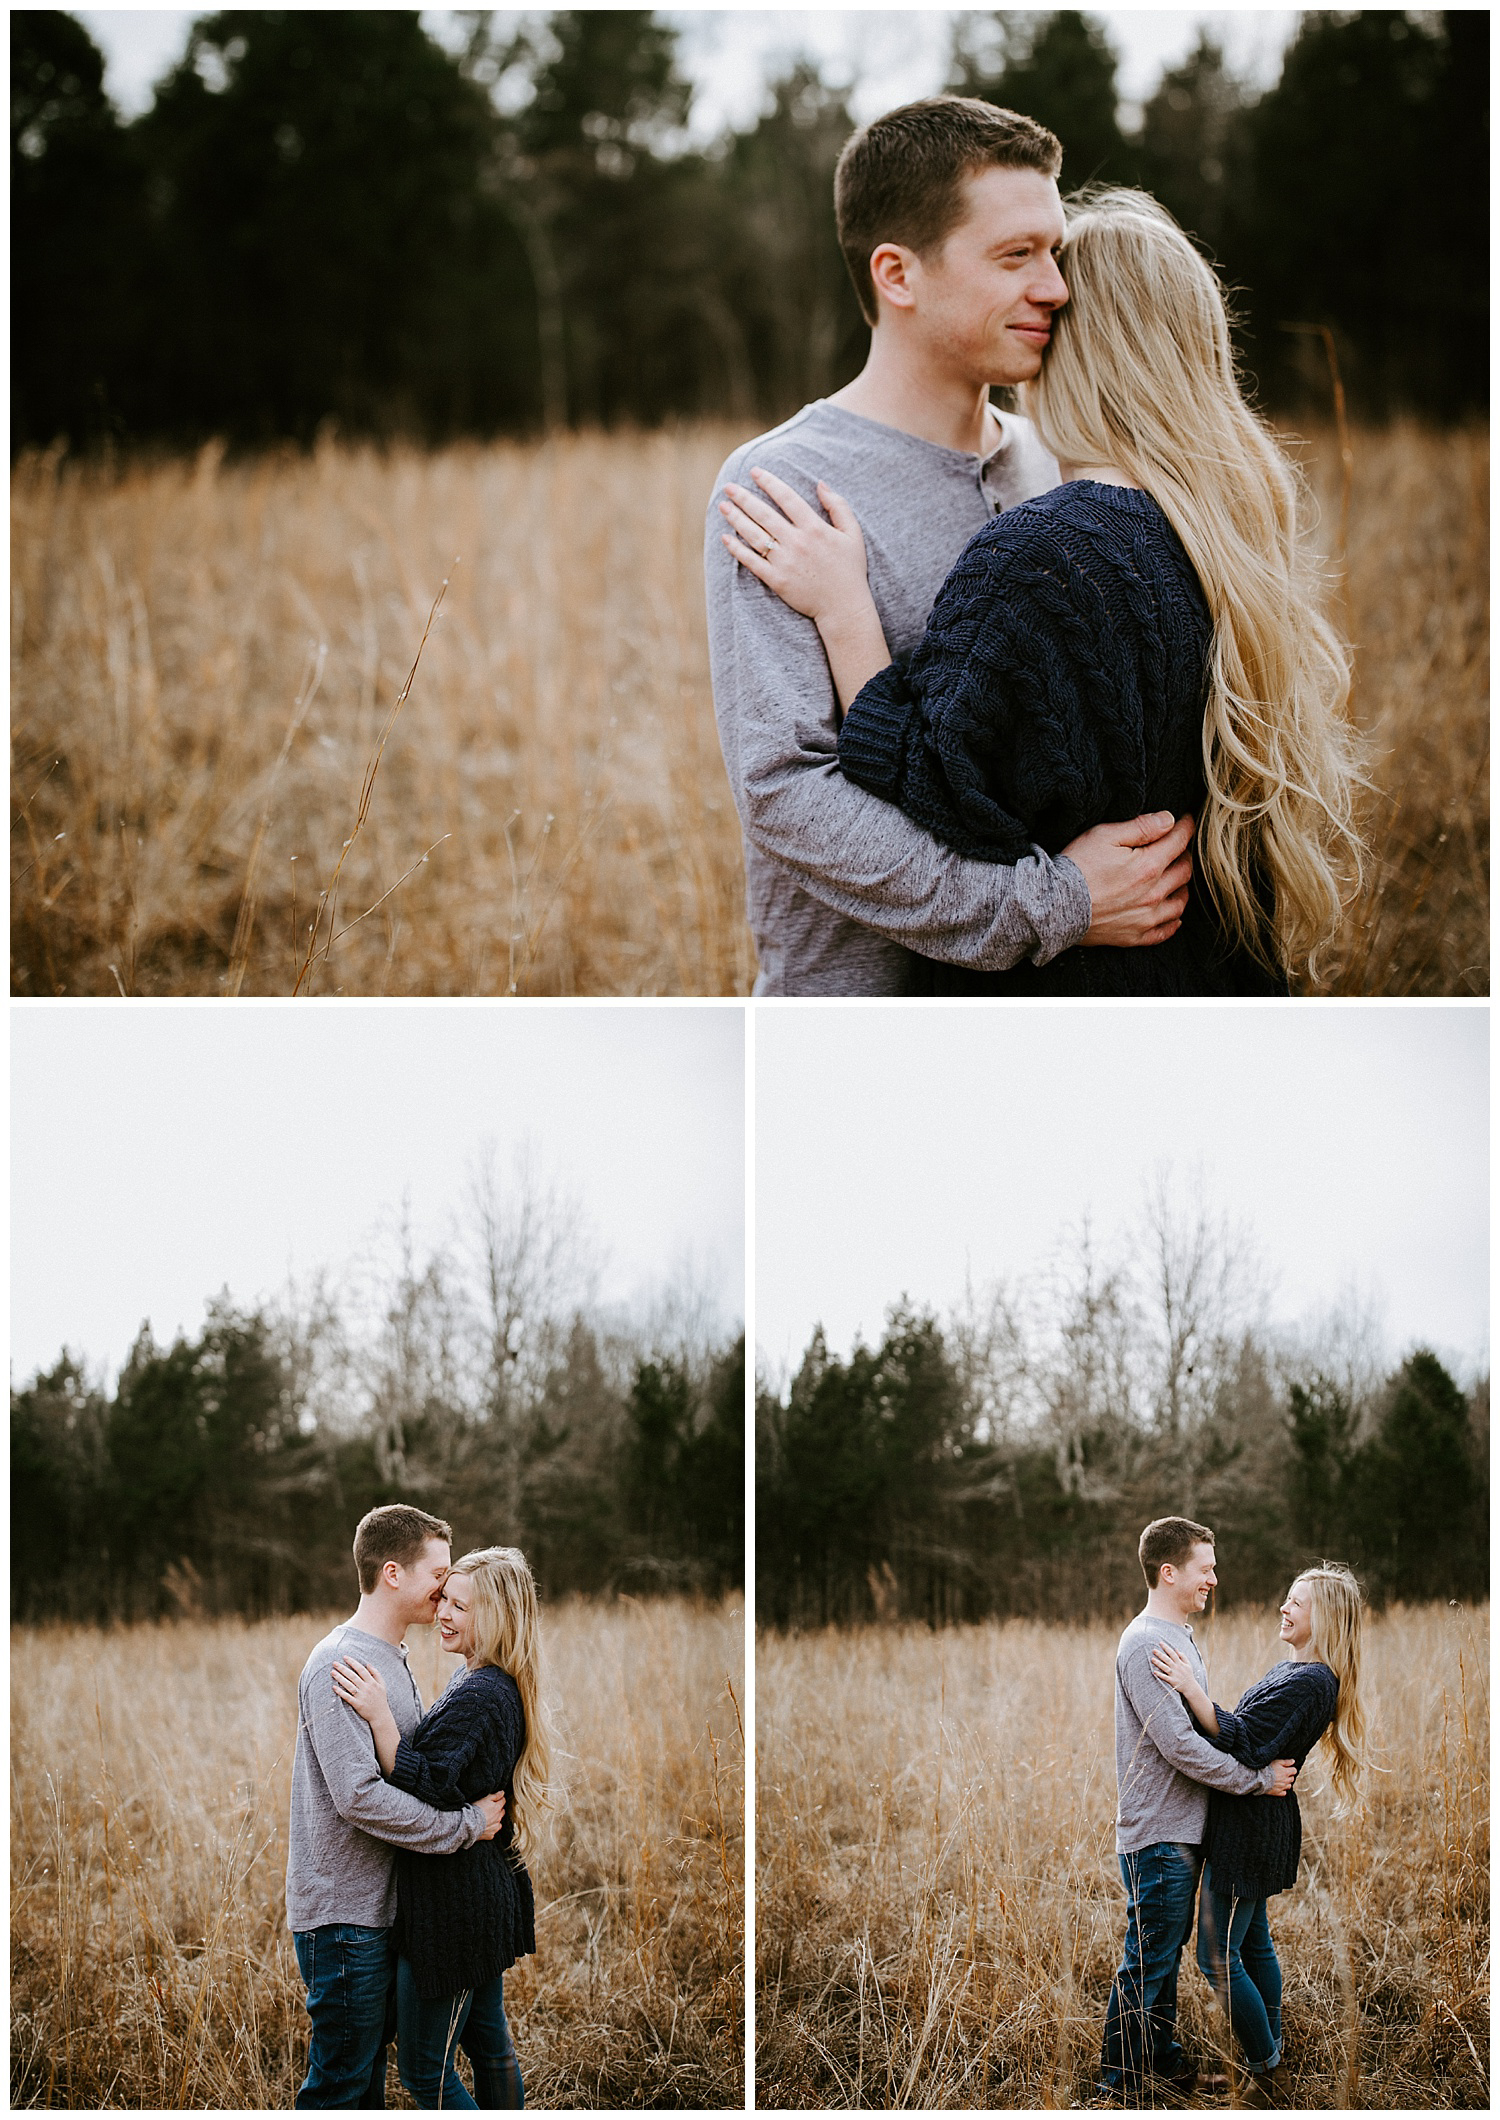 nashville-engagement-session-8.jpg